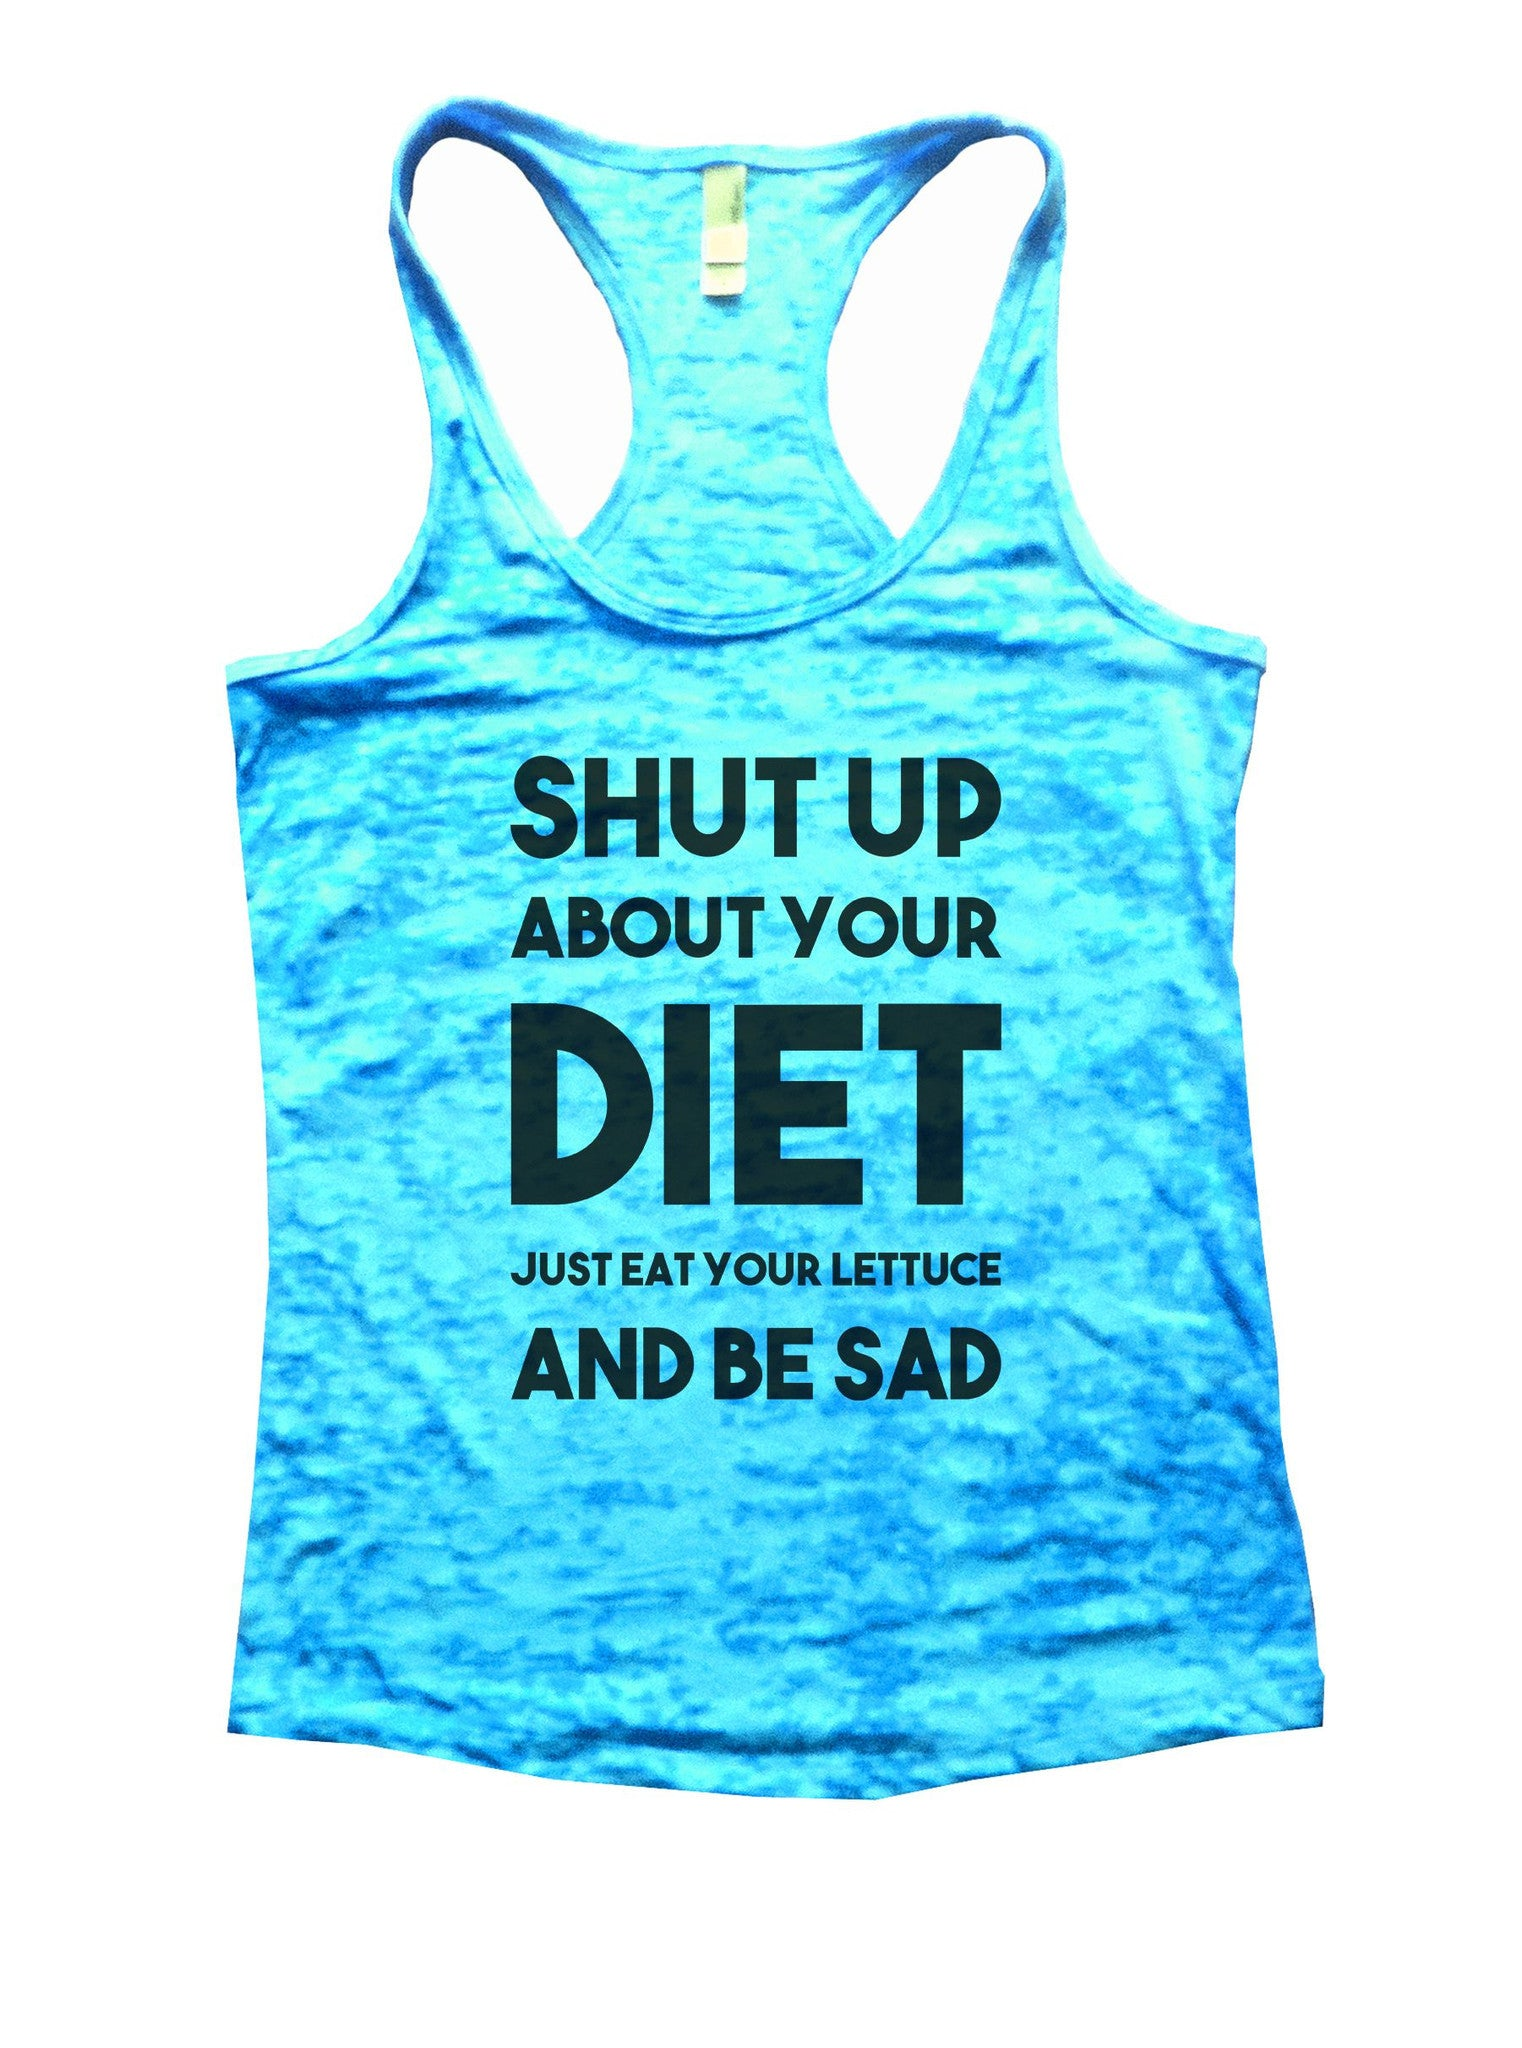 Shut Up About Your Diet Just Eat Your Lettuce And Be Sad Burnout Tank Top By BurnoutTankTops.com - 856 - Funny Shirts Tank Tops Burnouts and Triblends  - 5